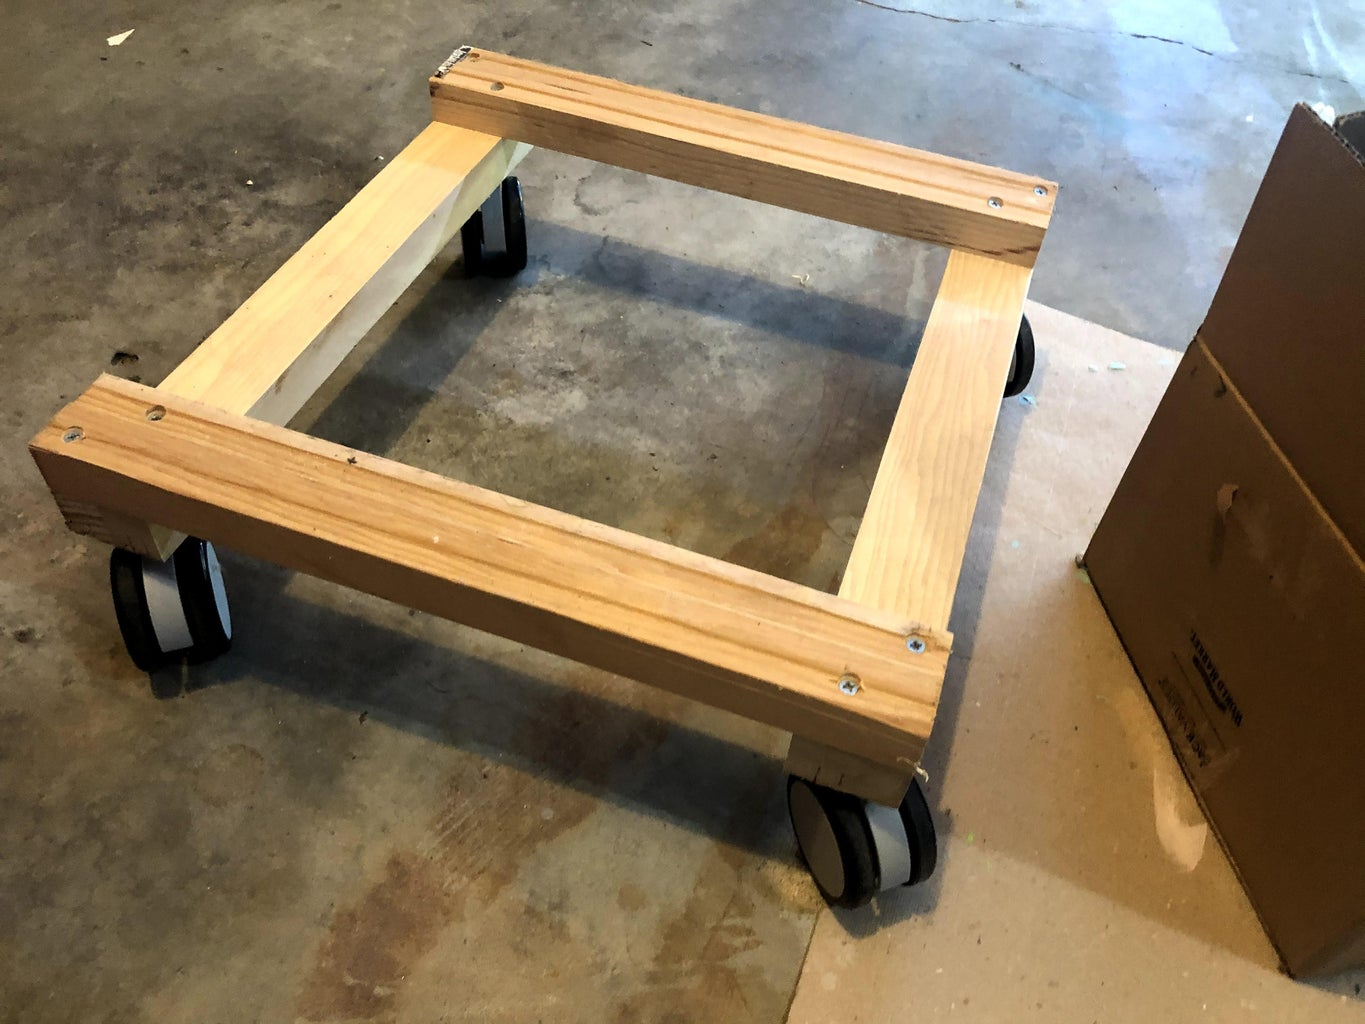 Build the Trailer's Base